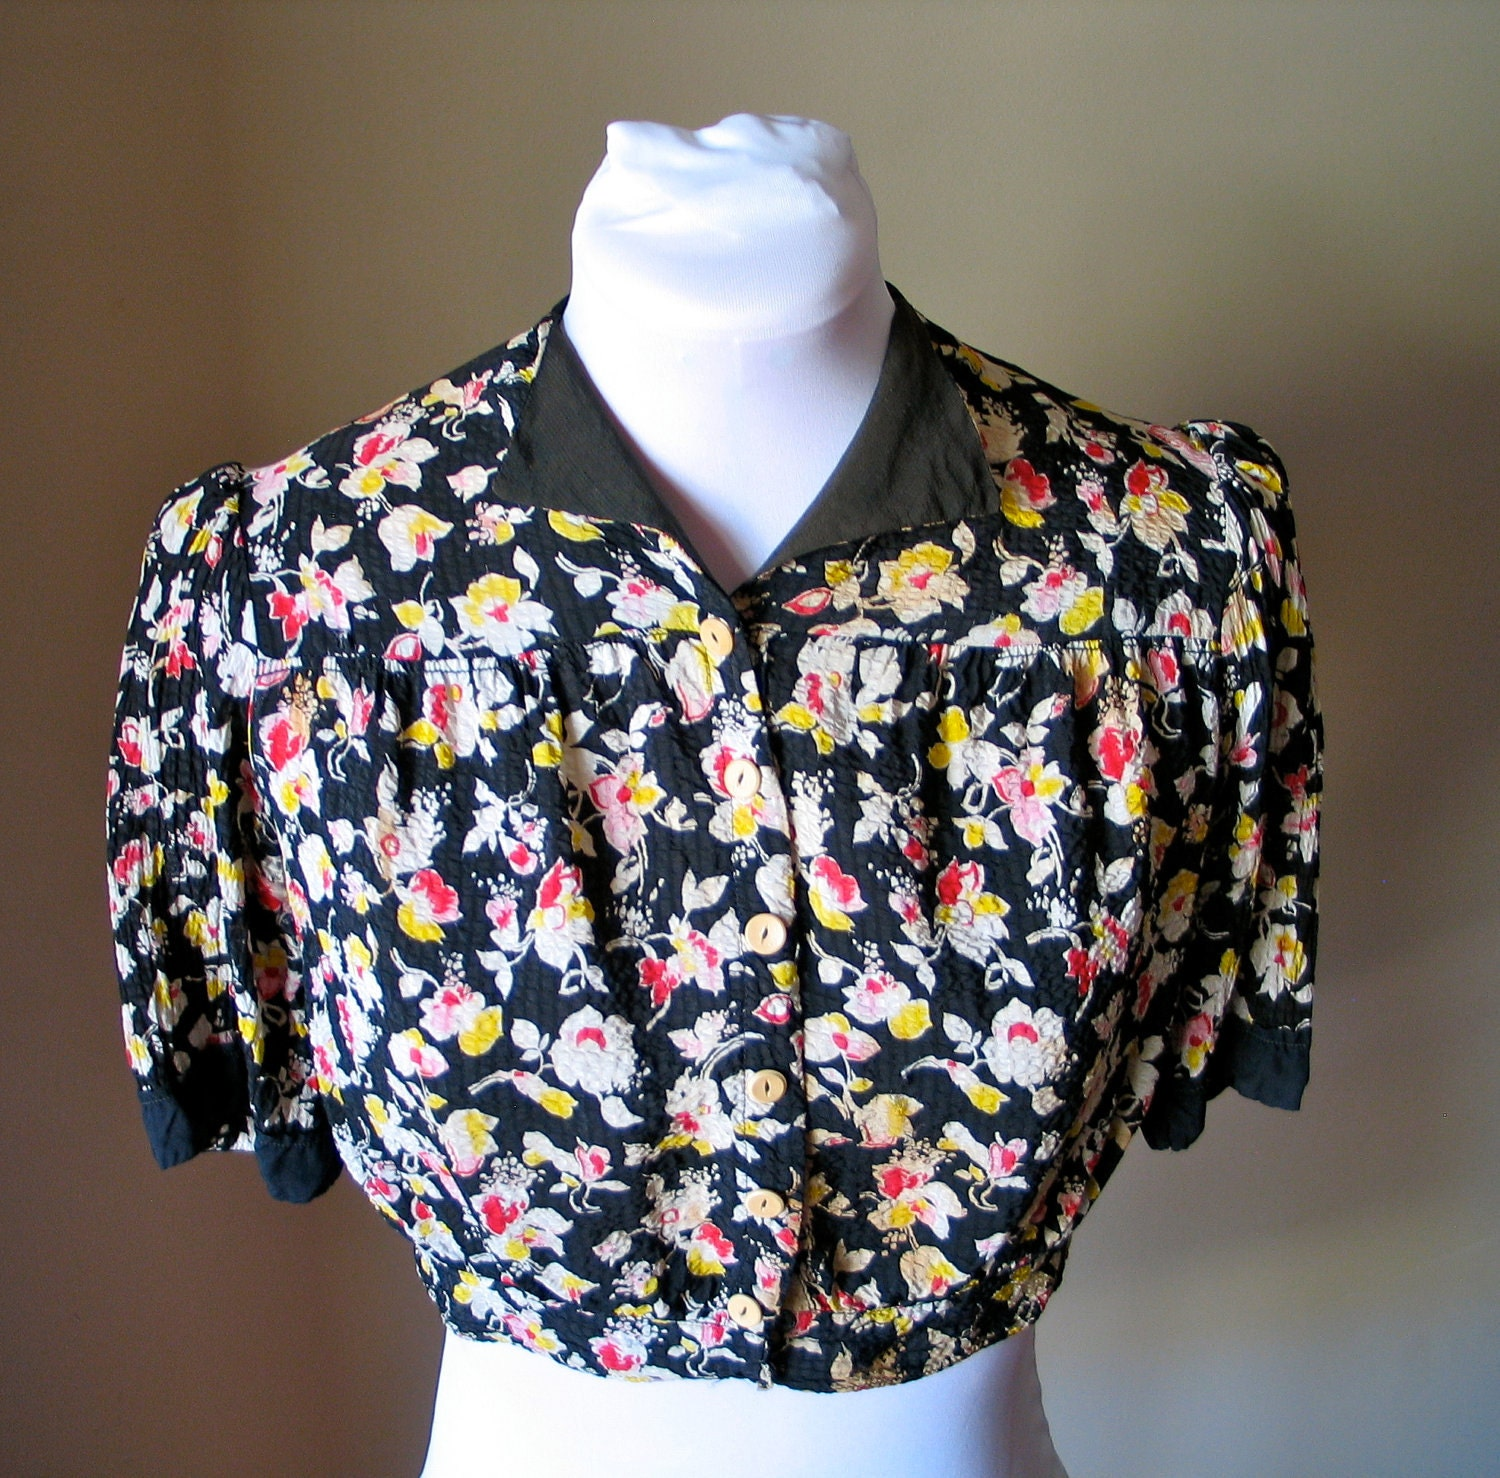 Vintage 1930s Black and Floral Bolero Blouse - AS IS